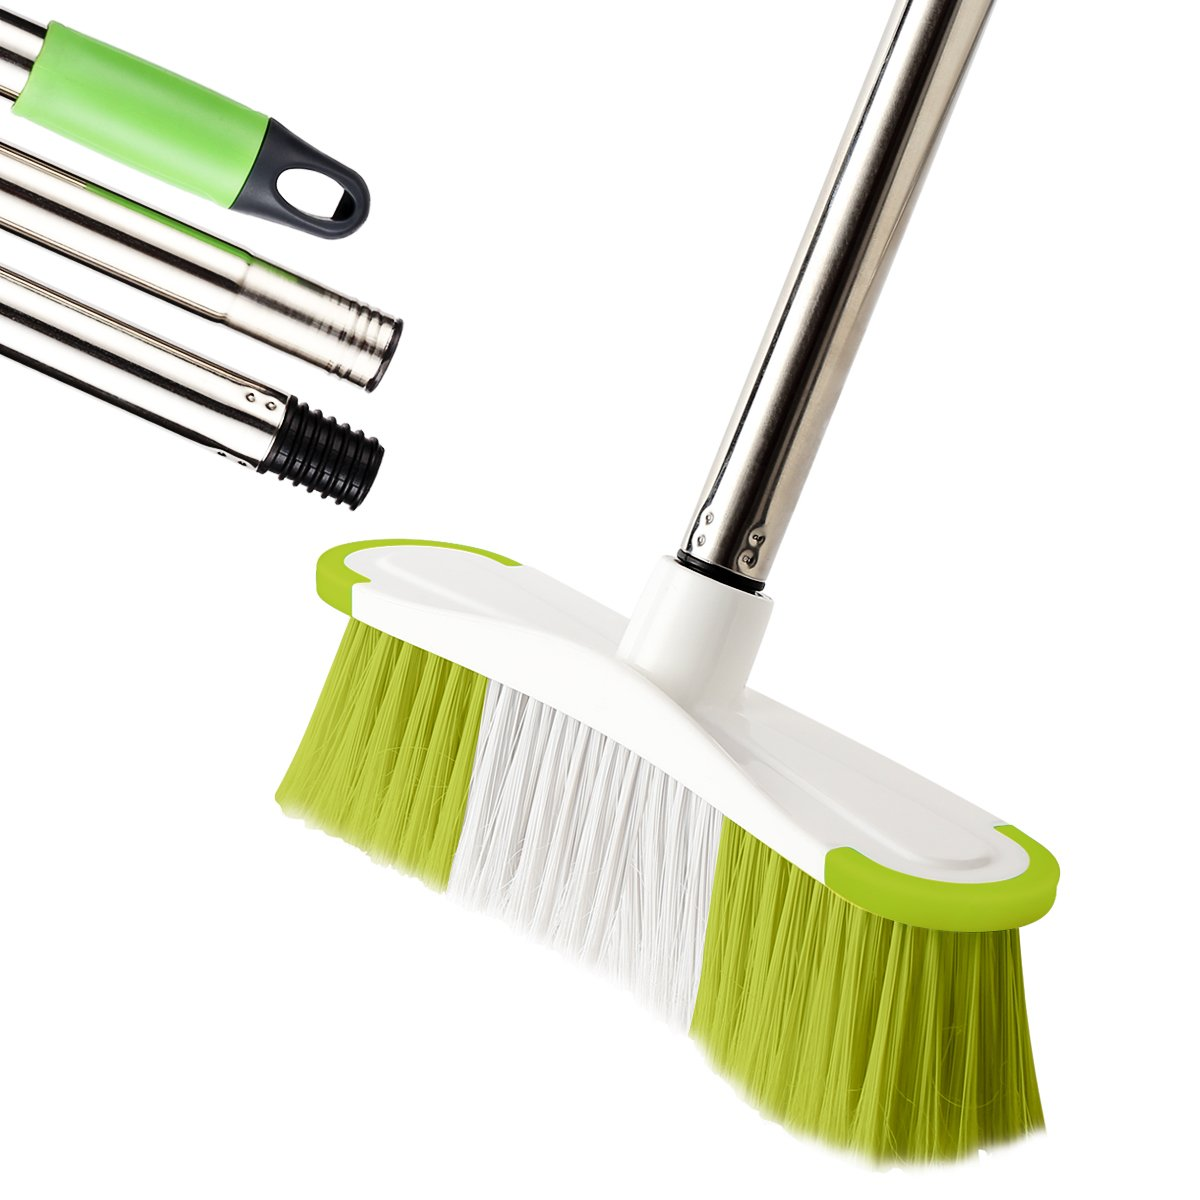 MEIBEI Deck Brush, Heavy Duty Deck Scrubber with Adjustable Stainless Steel Long Handle-51 Inches, Commercial Floor Scrub Brush, Perfect for Cleaning Deck, Patio, Hallway, Driveway and Boat